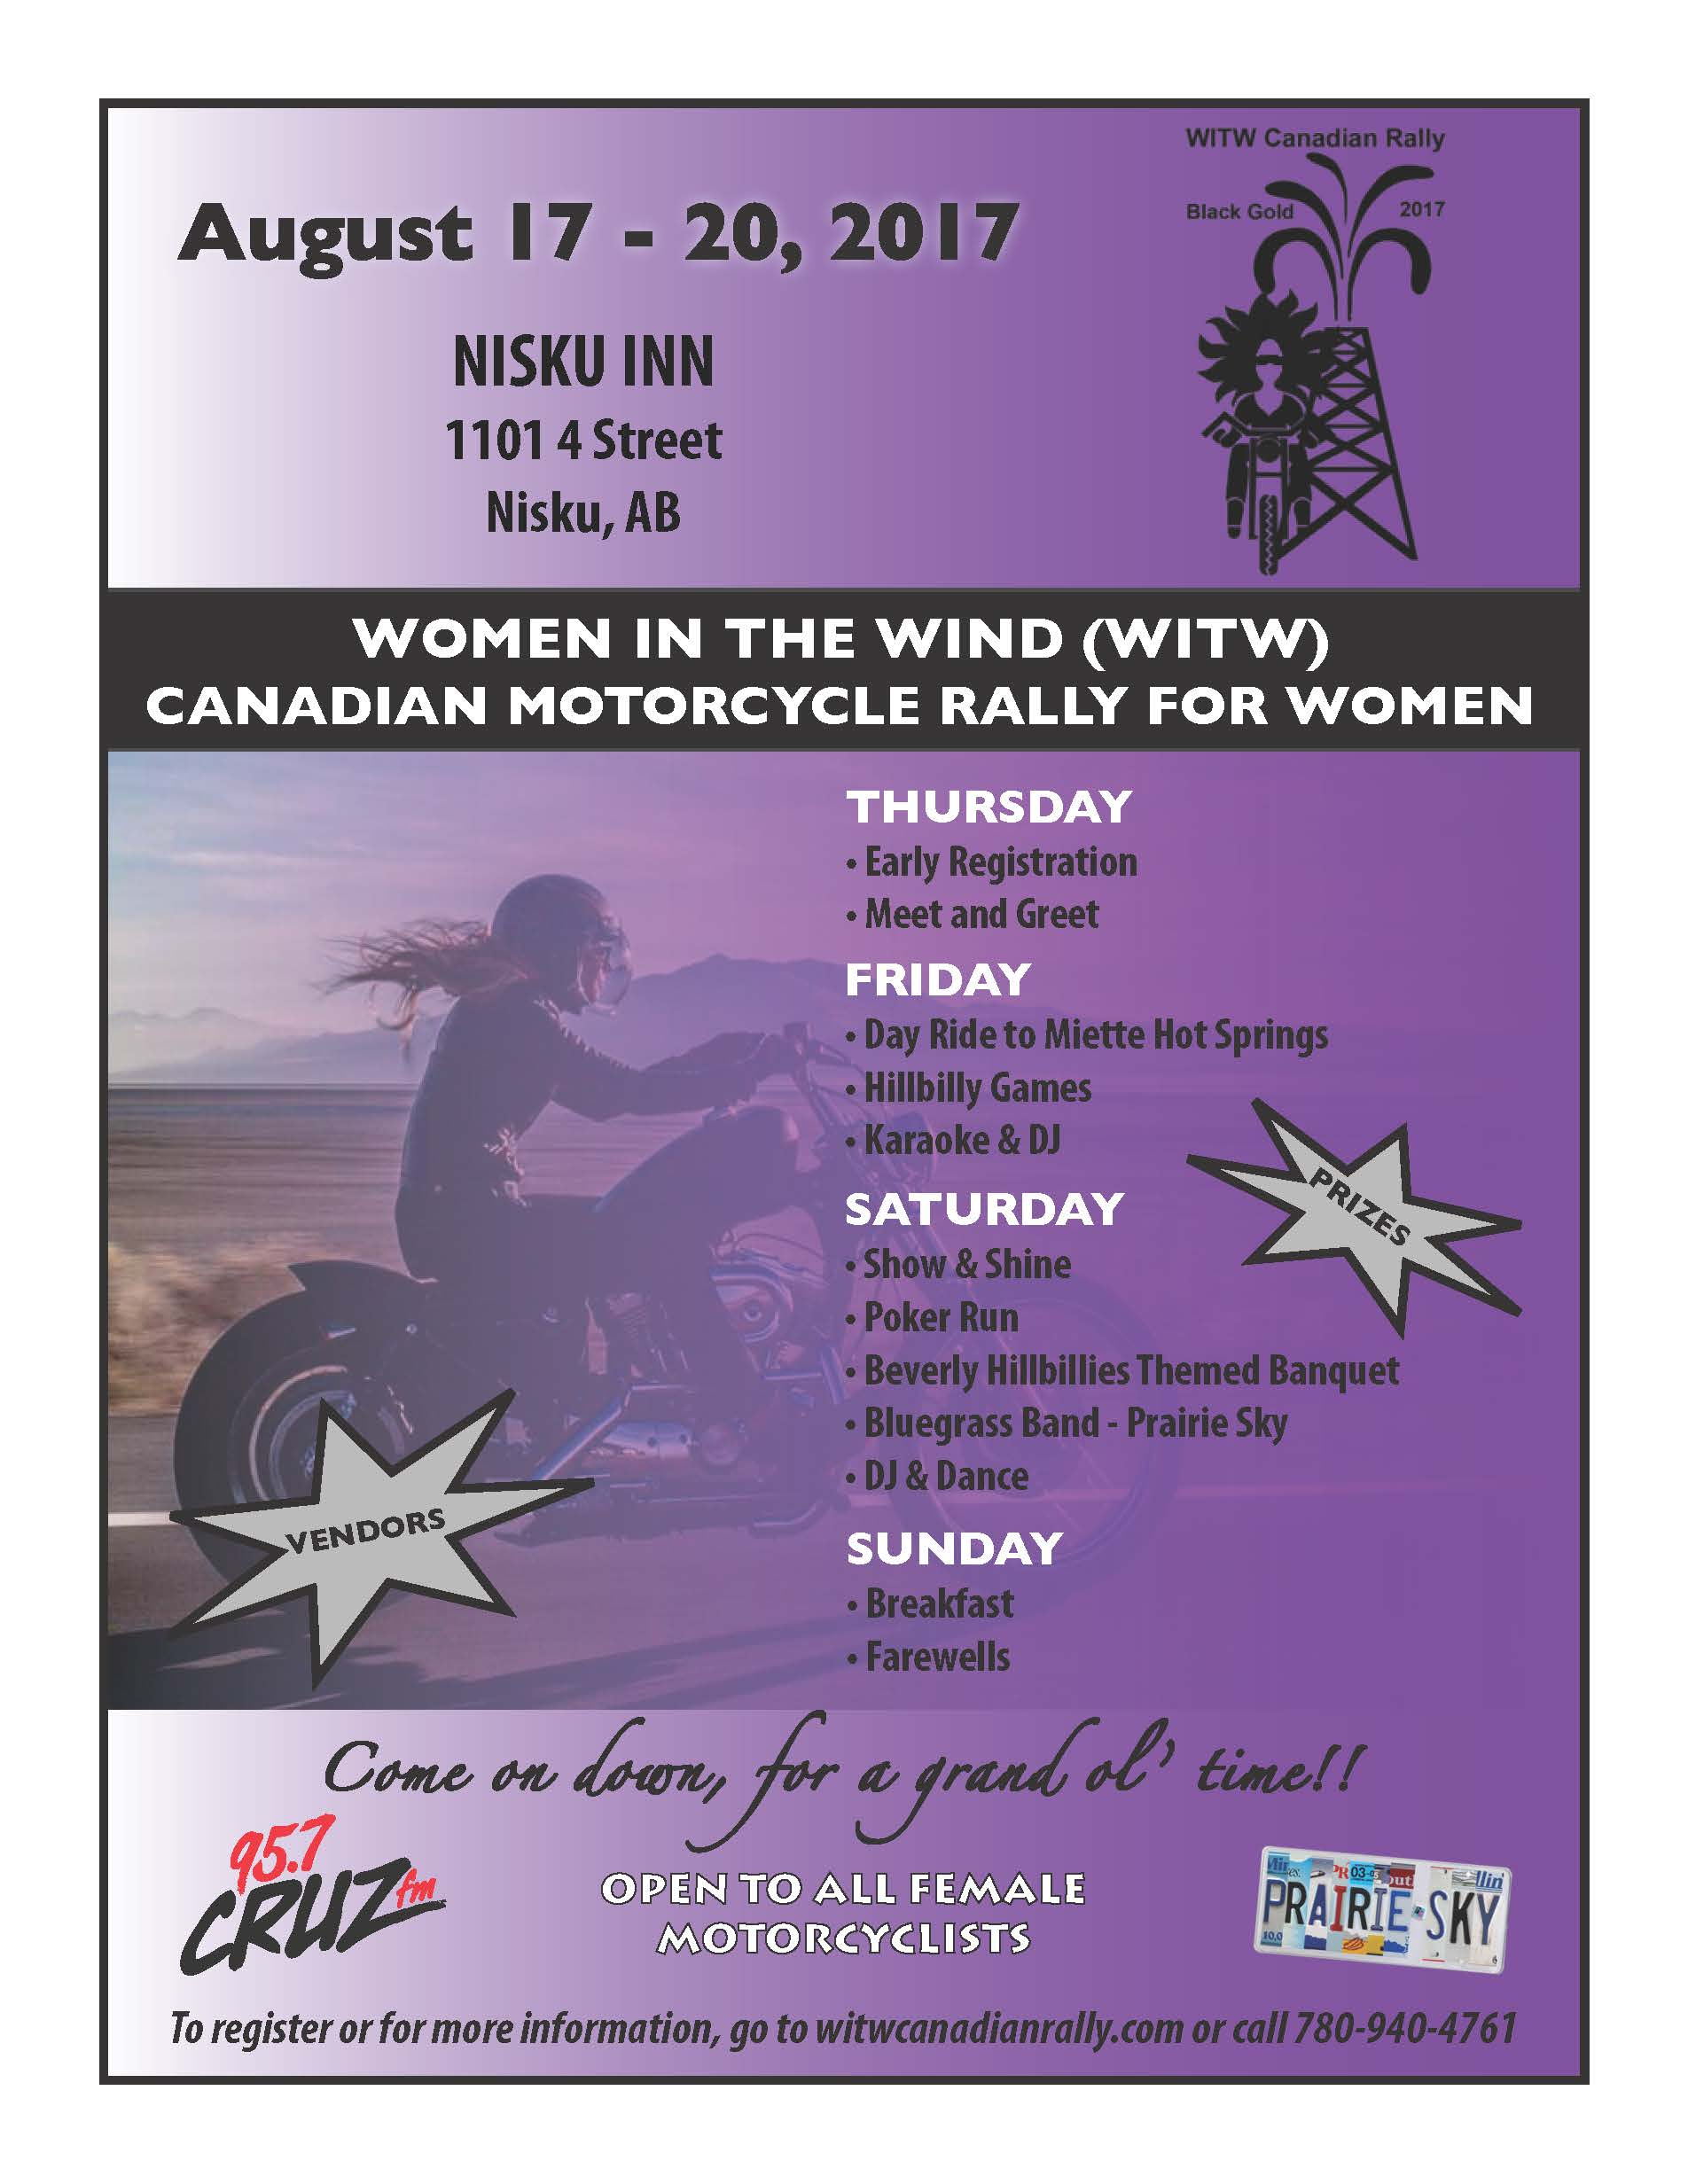 Women in the Wind Motorcycle Rally